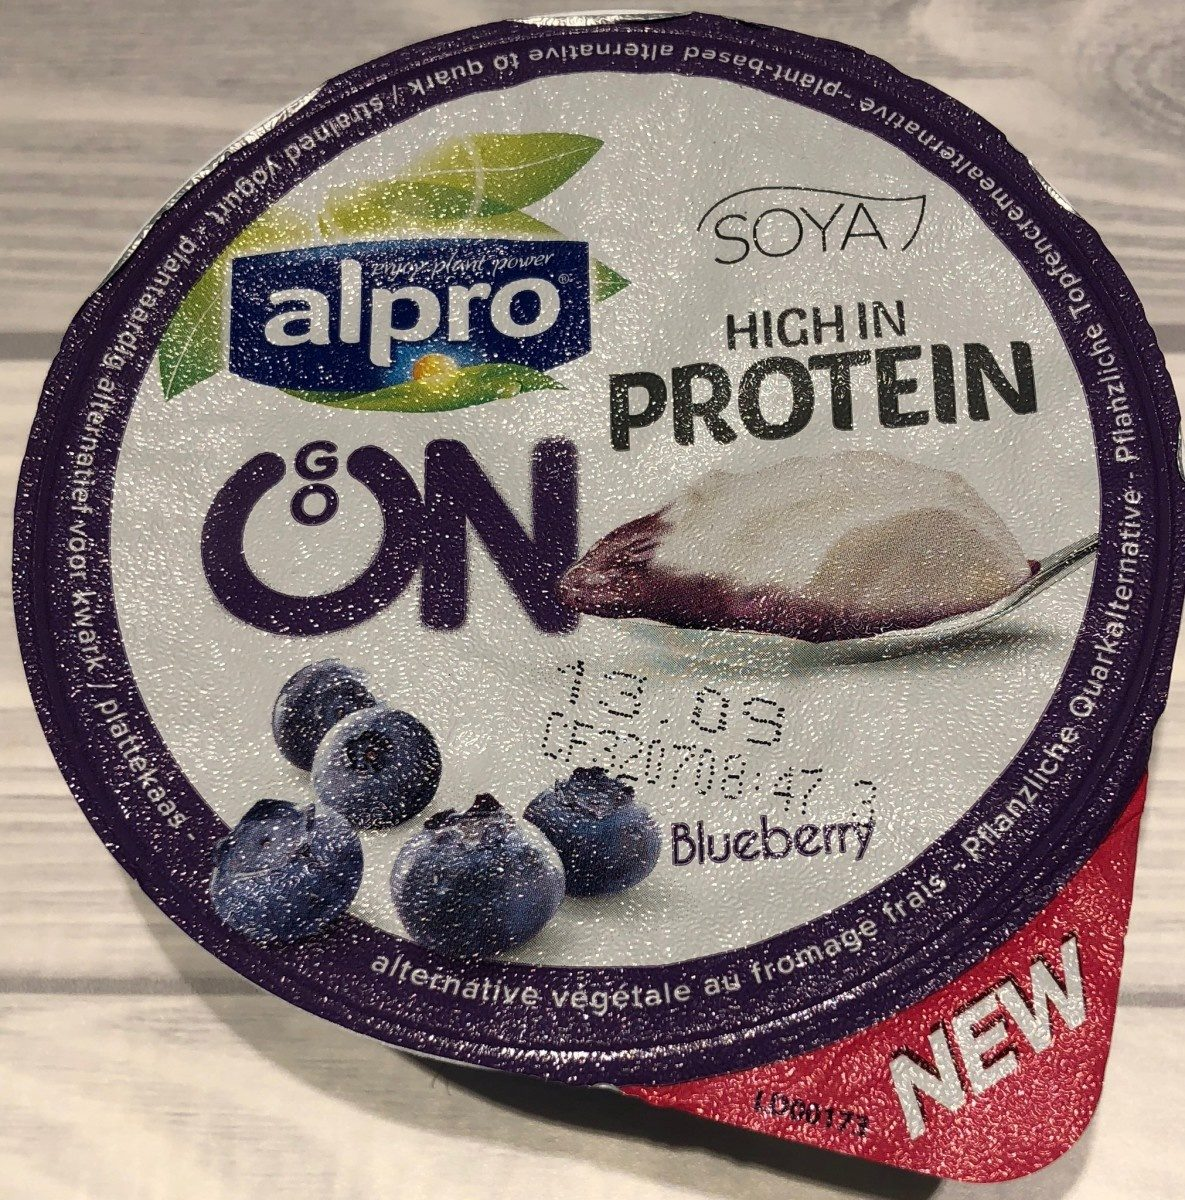 GO ON - High in protein - Product - nl